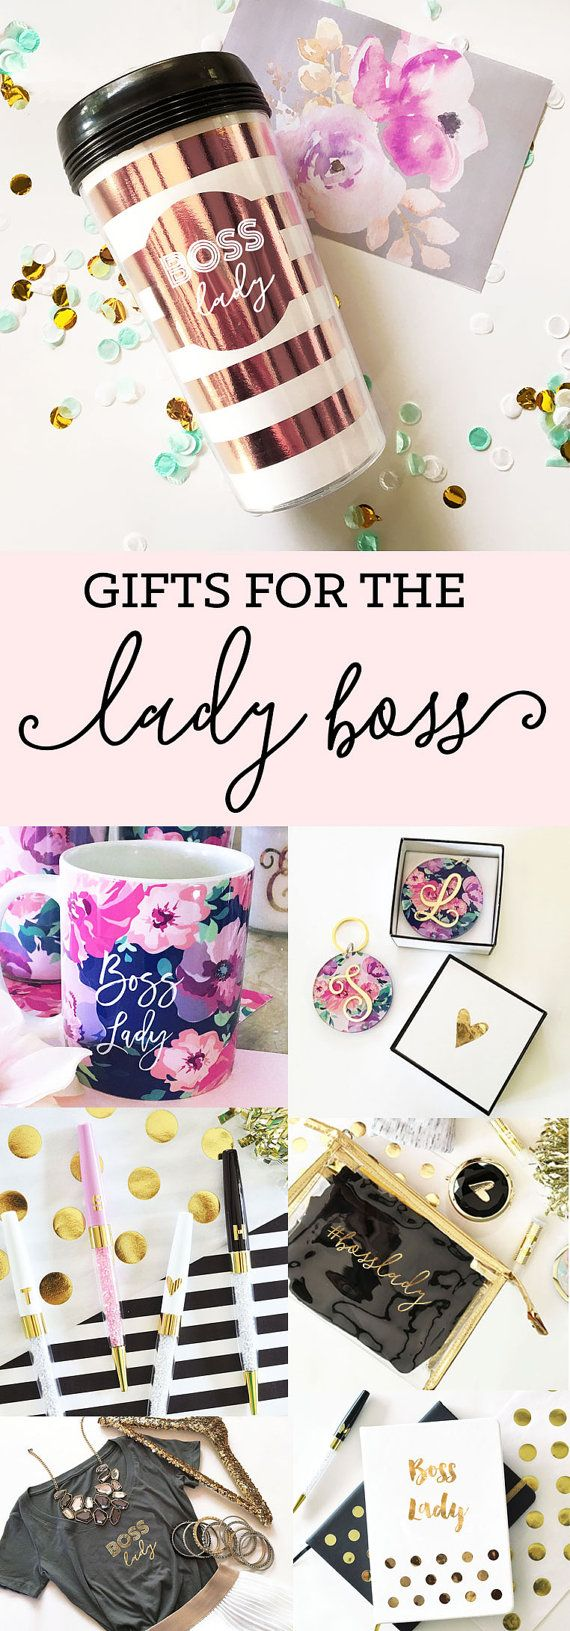 boss gifts for boss lady gift ideas for women boss christmas gift lady boss girl boss